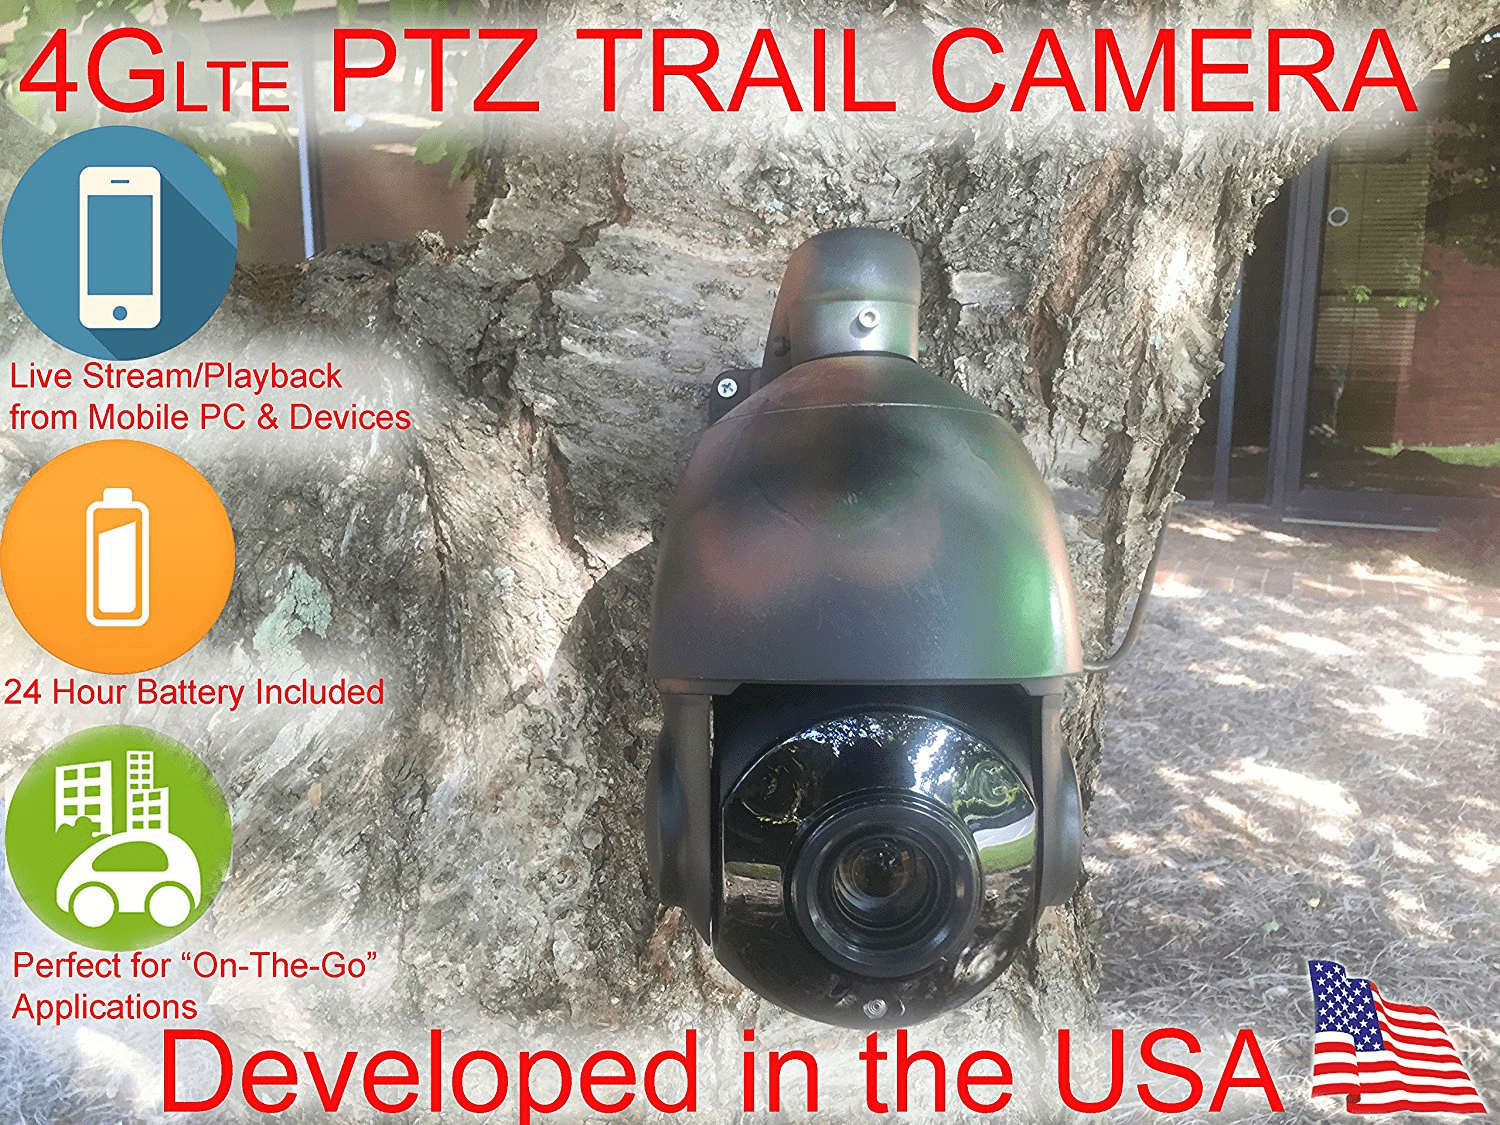 RD-85H Compact 960P HD 4G/LTE Remote Access PTZ  10x Optical Zoom HD Day/ Night Outdoor Hunting Camera